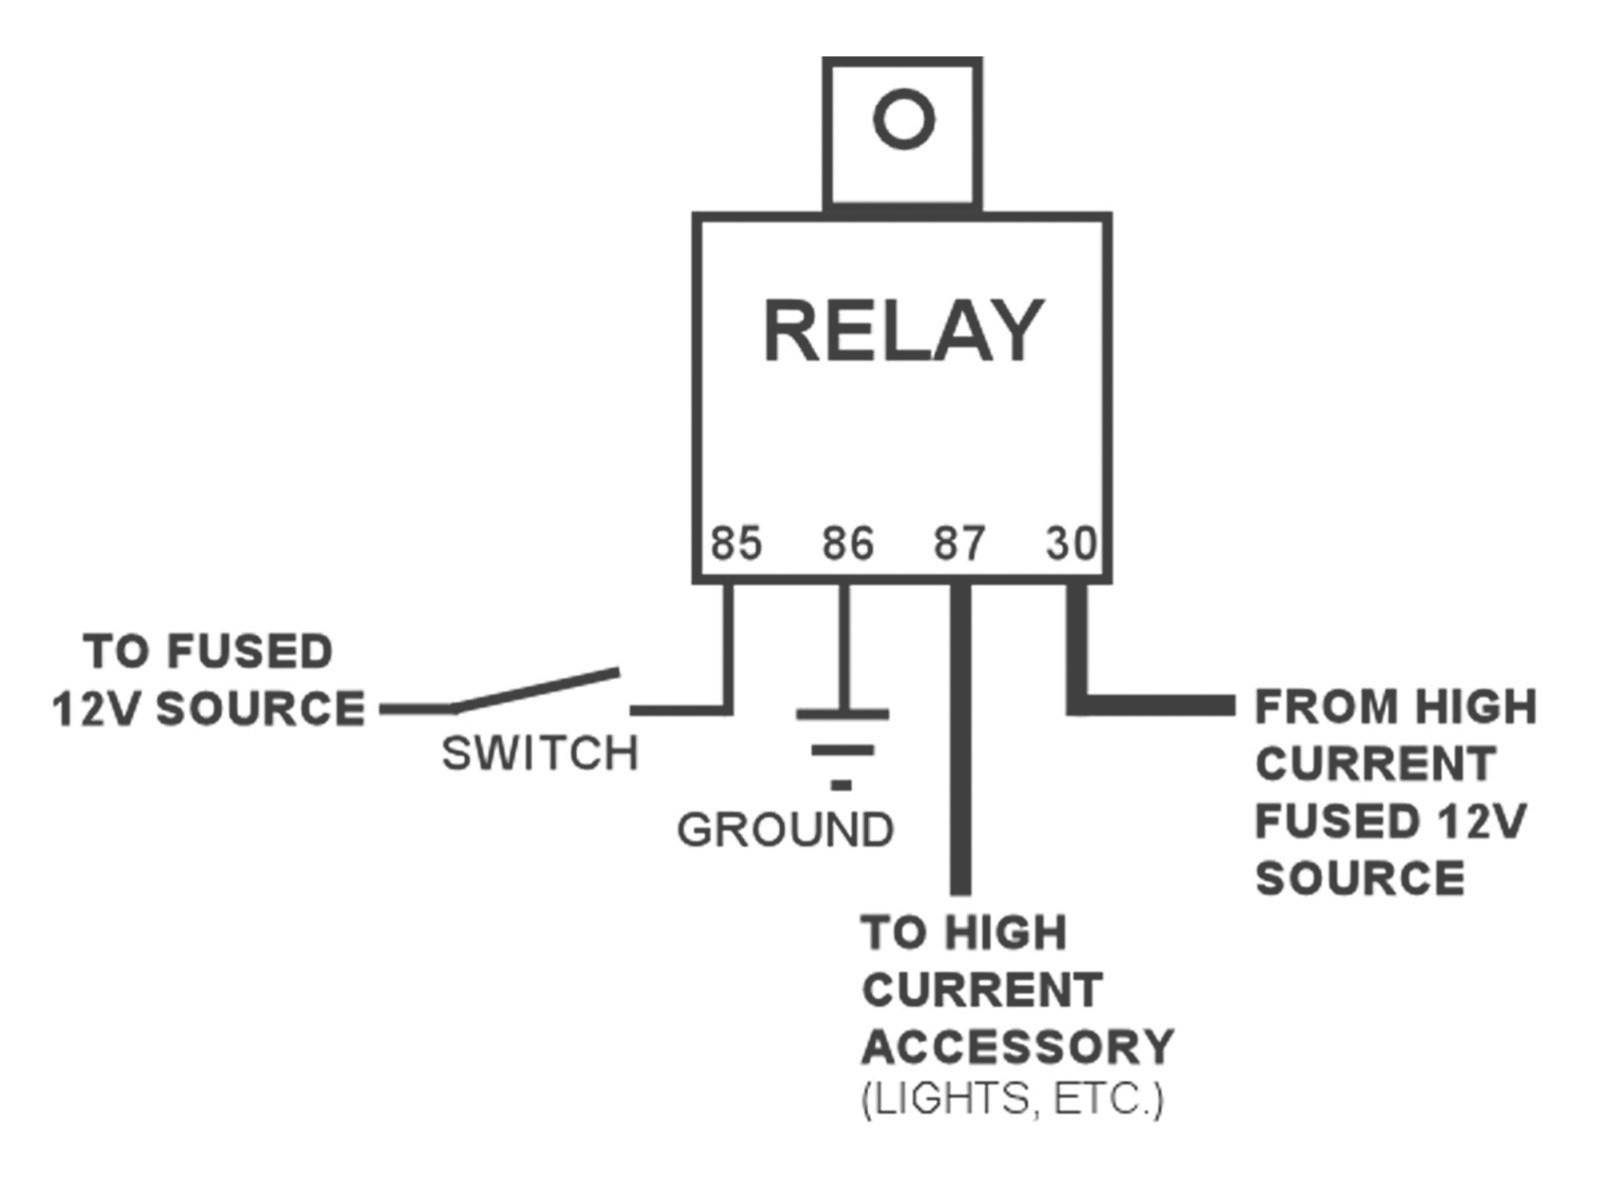 12v Relay Wiring Diagram Compressor Schematic Diagrams 12 Volt Emco Air